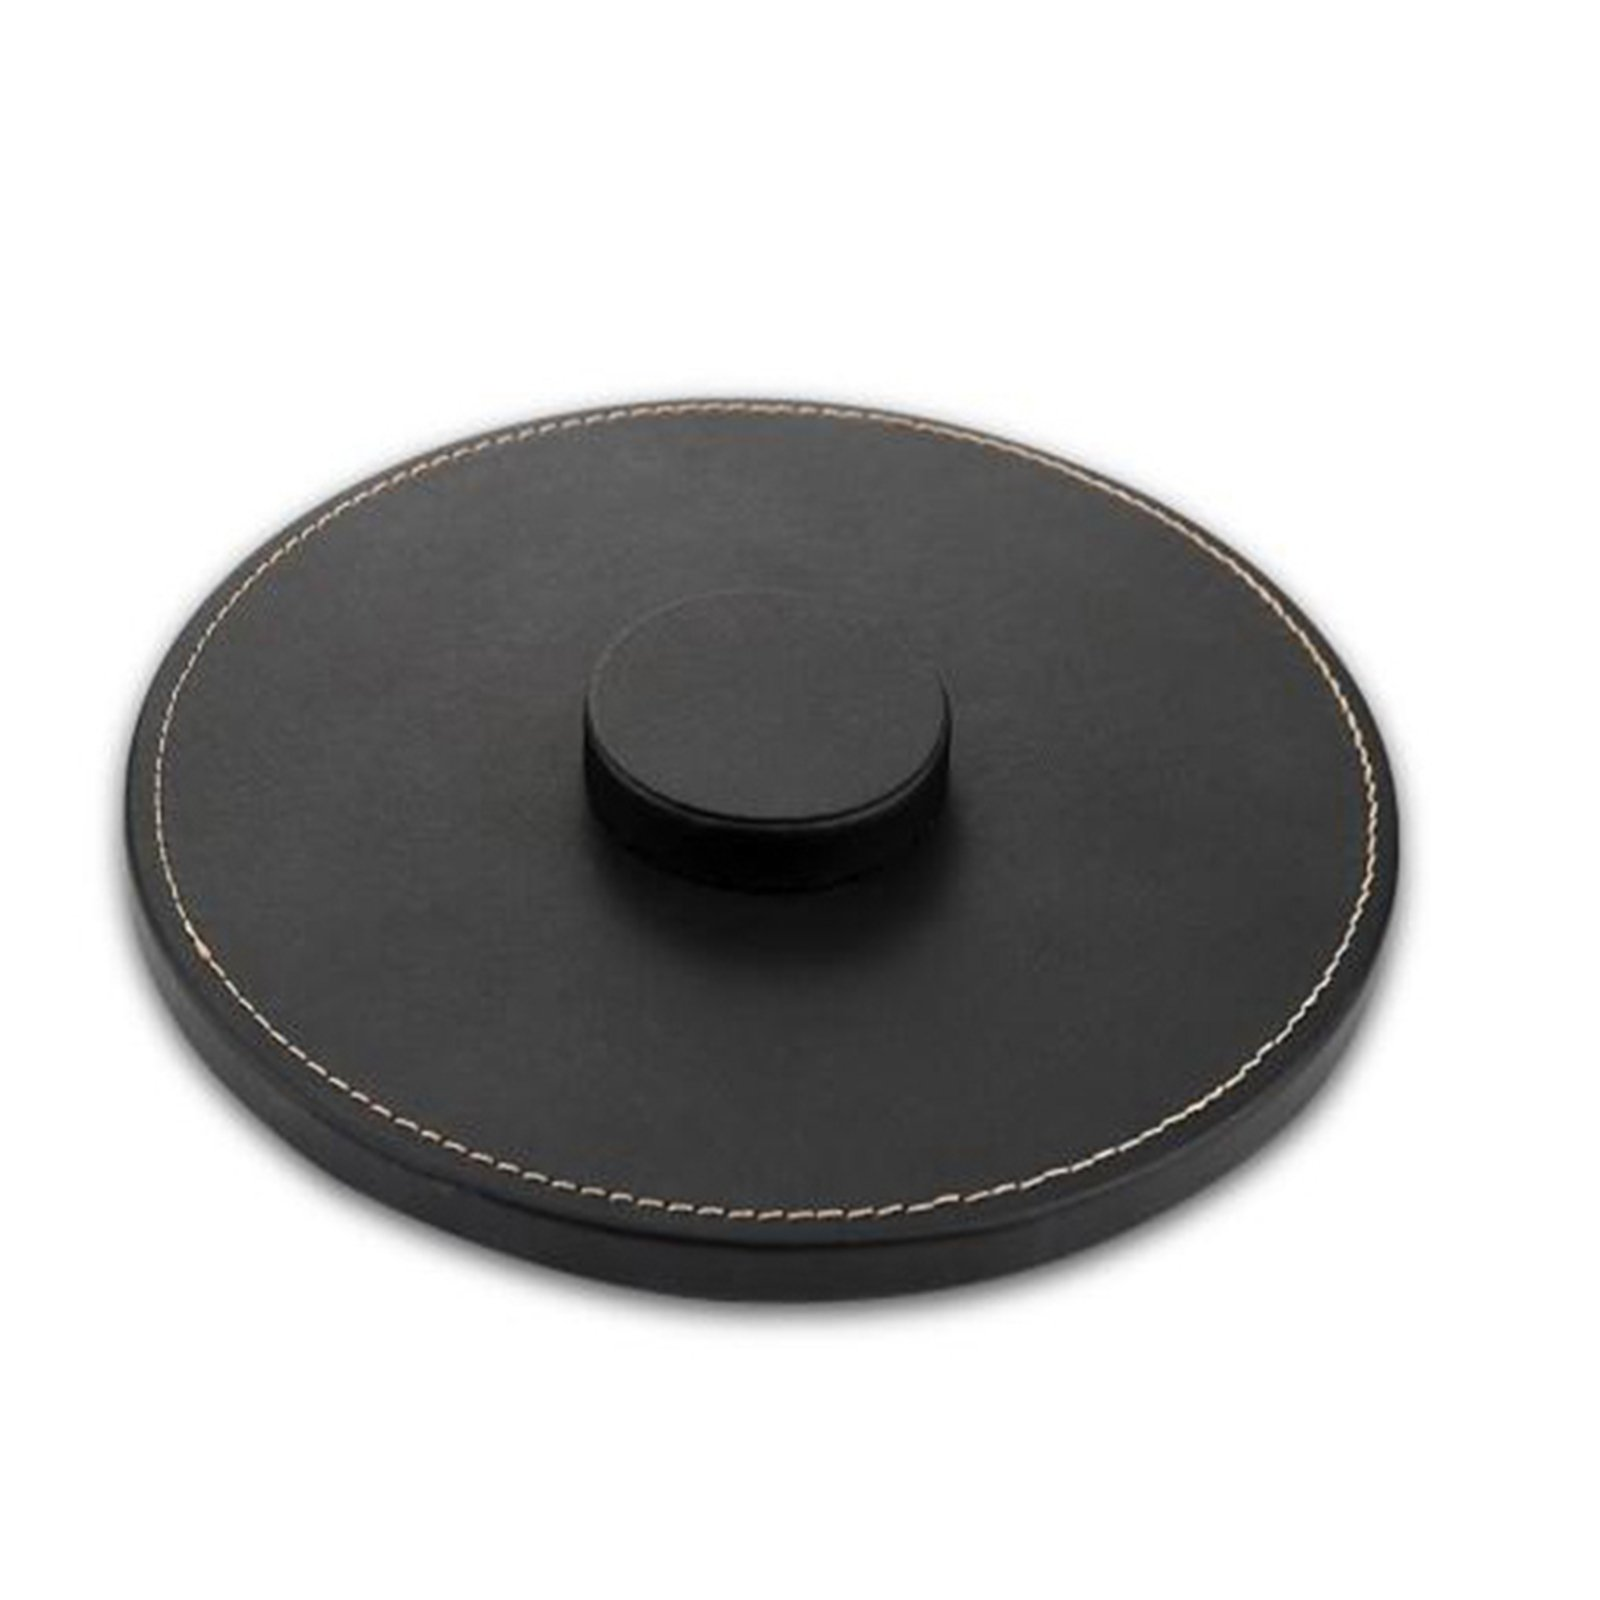 HOMEPOD Leather Stand, XHS Natural Leather Anti-slip Protective Coaster pad holder Mount for Apple HOMEPOD Intelligent Speaker (Black)